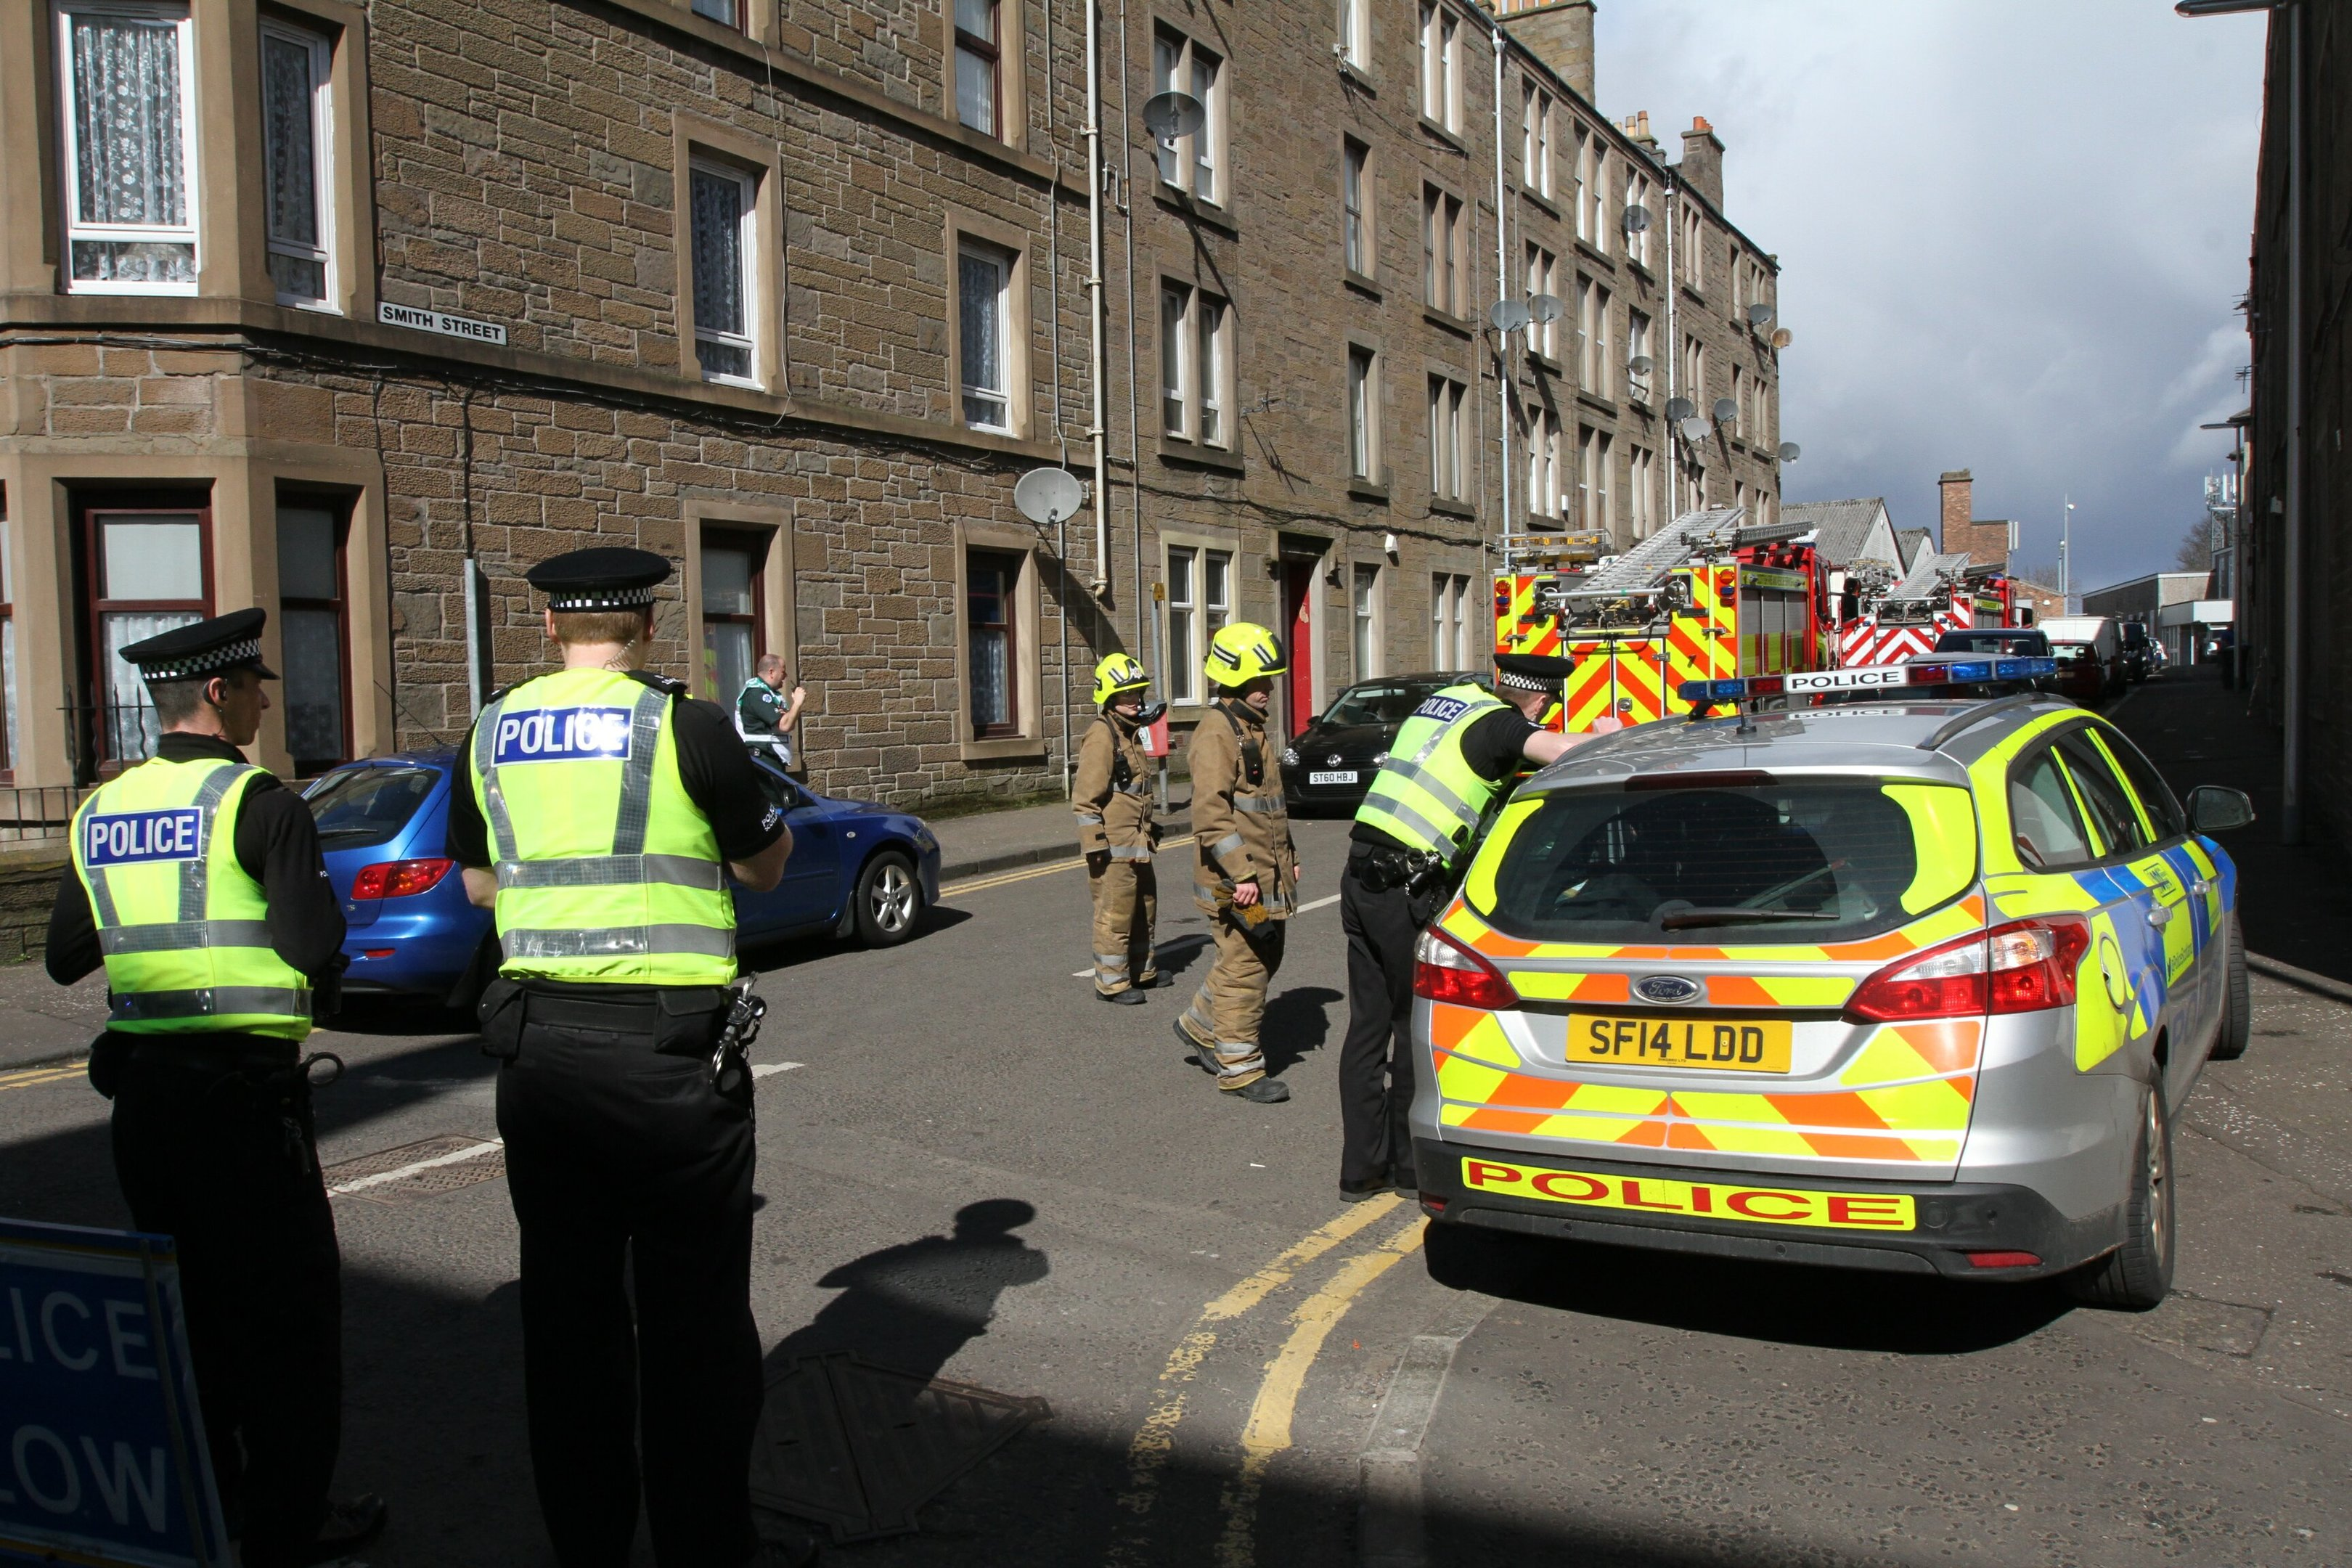 The flats have been evacuated